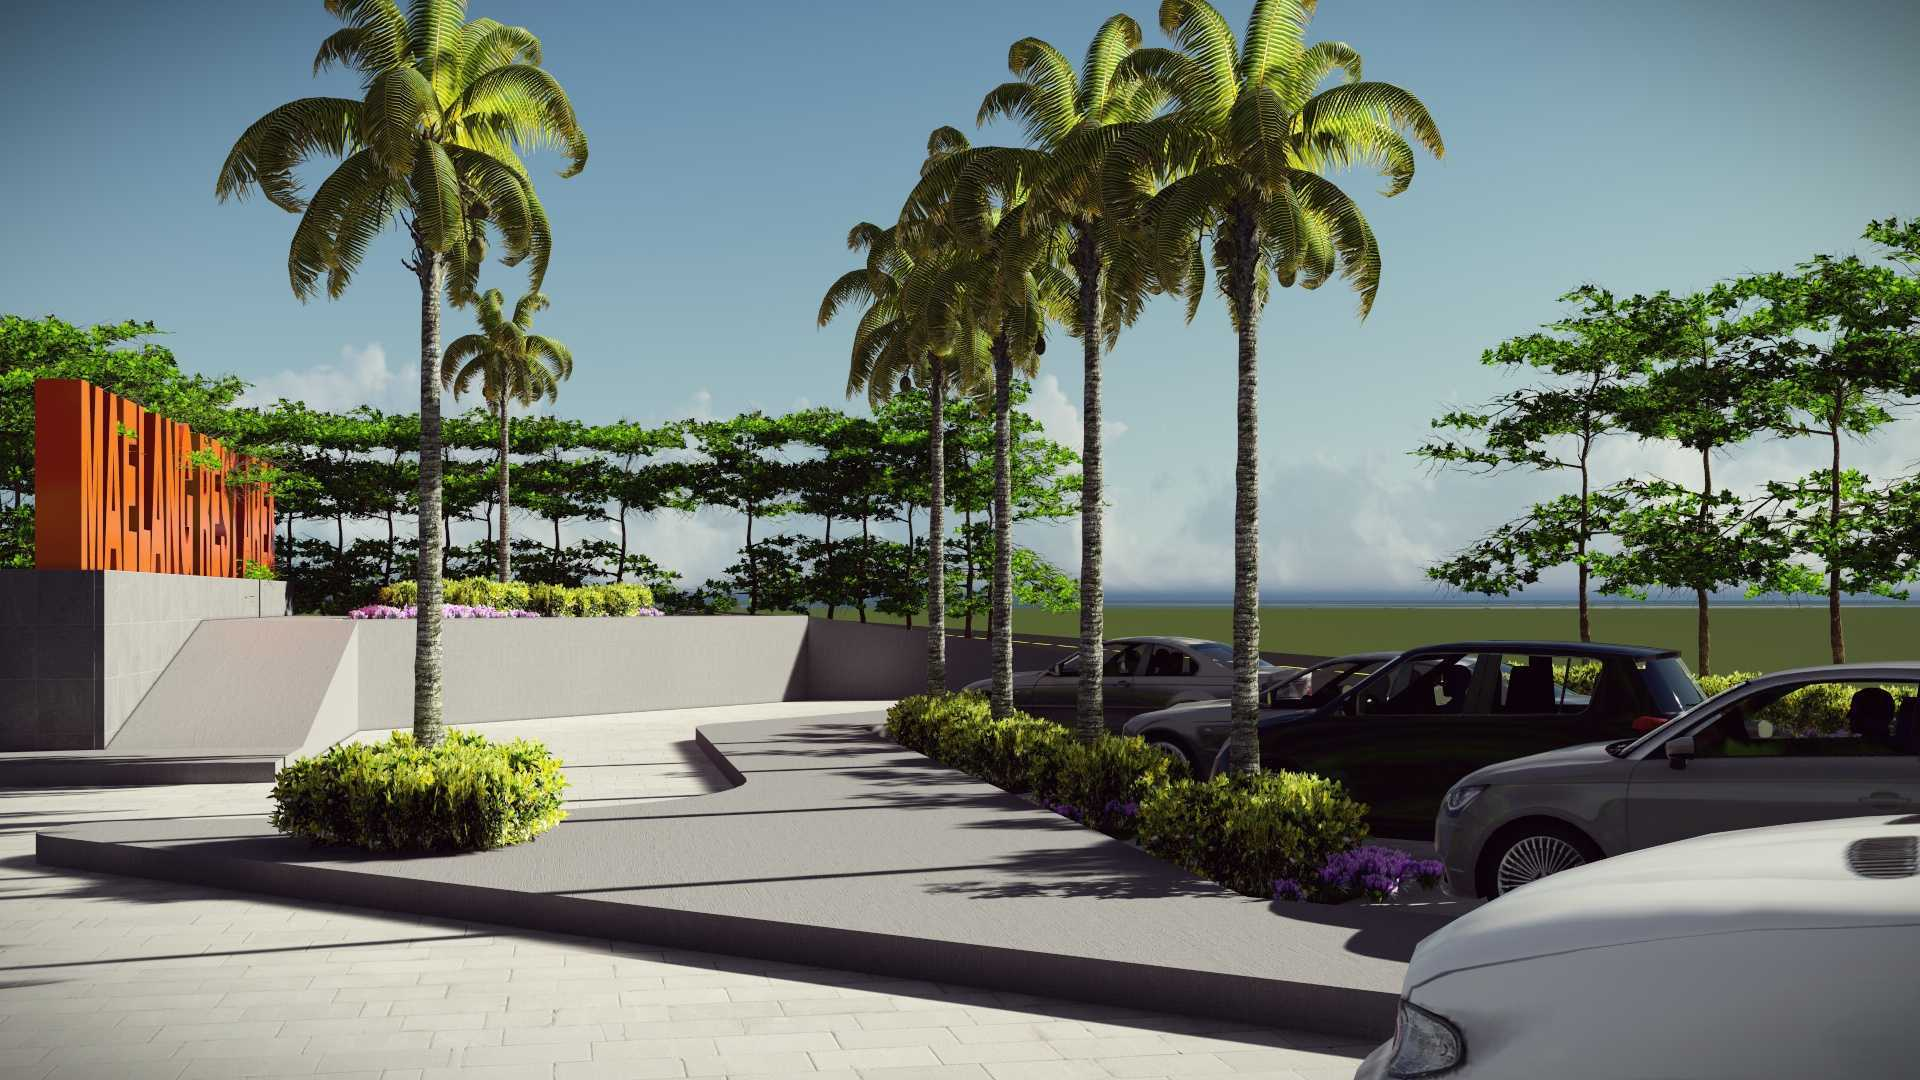 Mannor Architect Maelang Parking Area Gorontalo, Indonesia Gorontalo, Indonesia Maelang Rest Area   40746